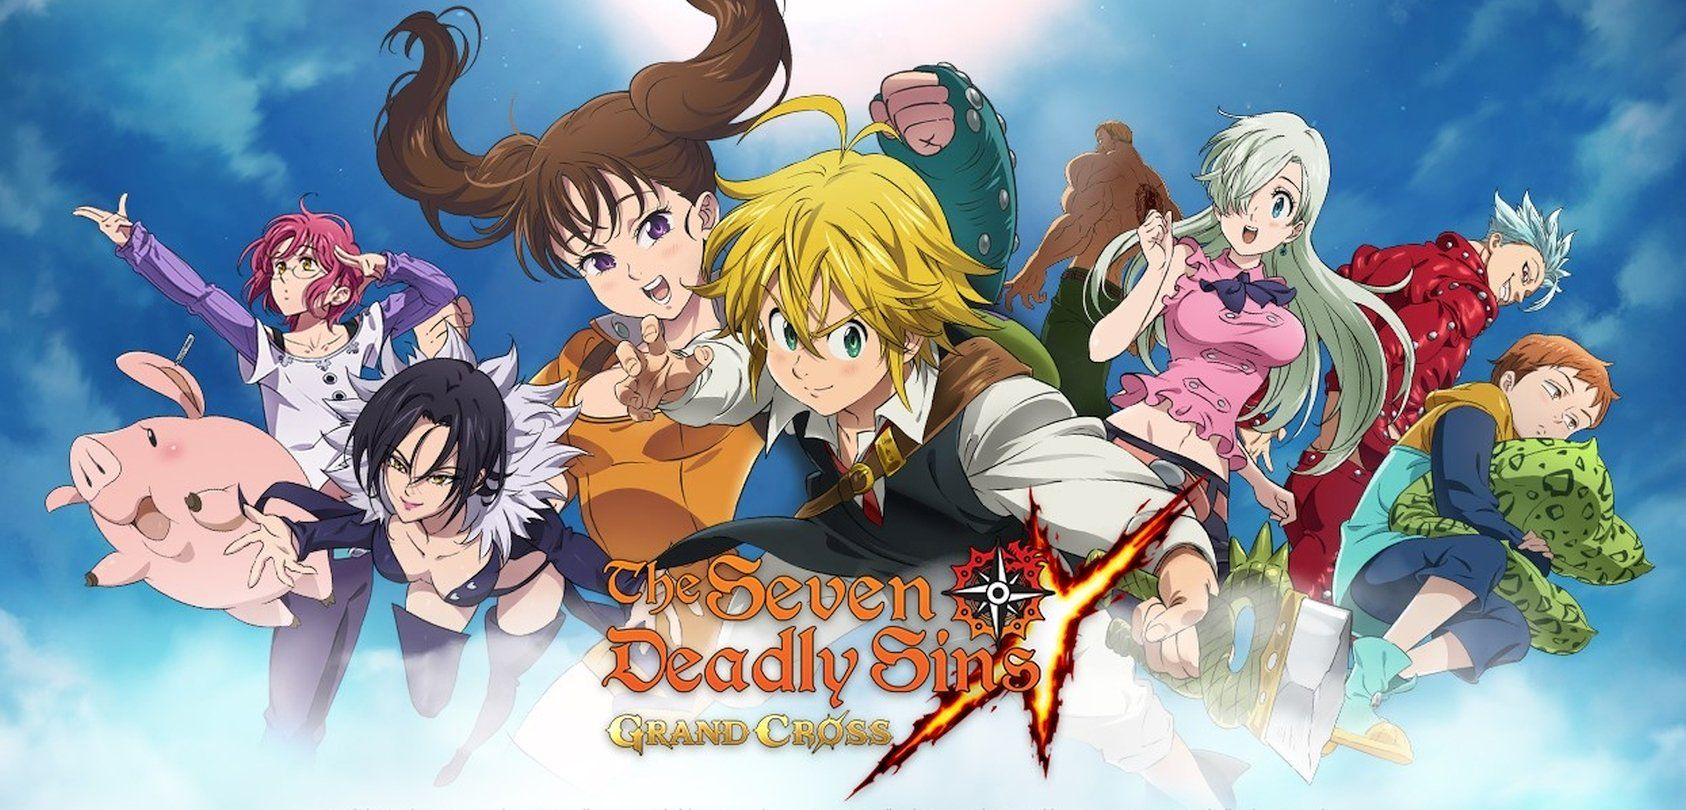 Pre Registration Opens For The Seven Deadly Sins Grand Cross In North America Applestore Googleplay Mobile Netmarbl Grand Cross Seven Deadly Sins Anime